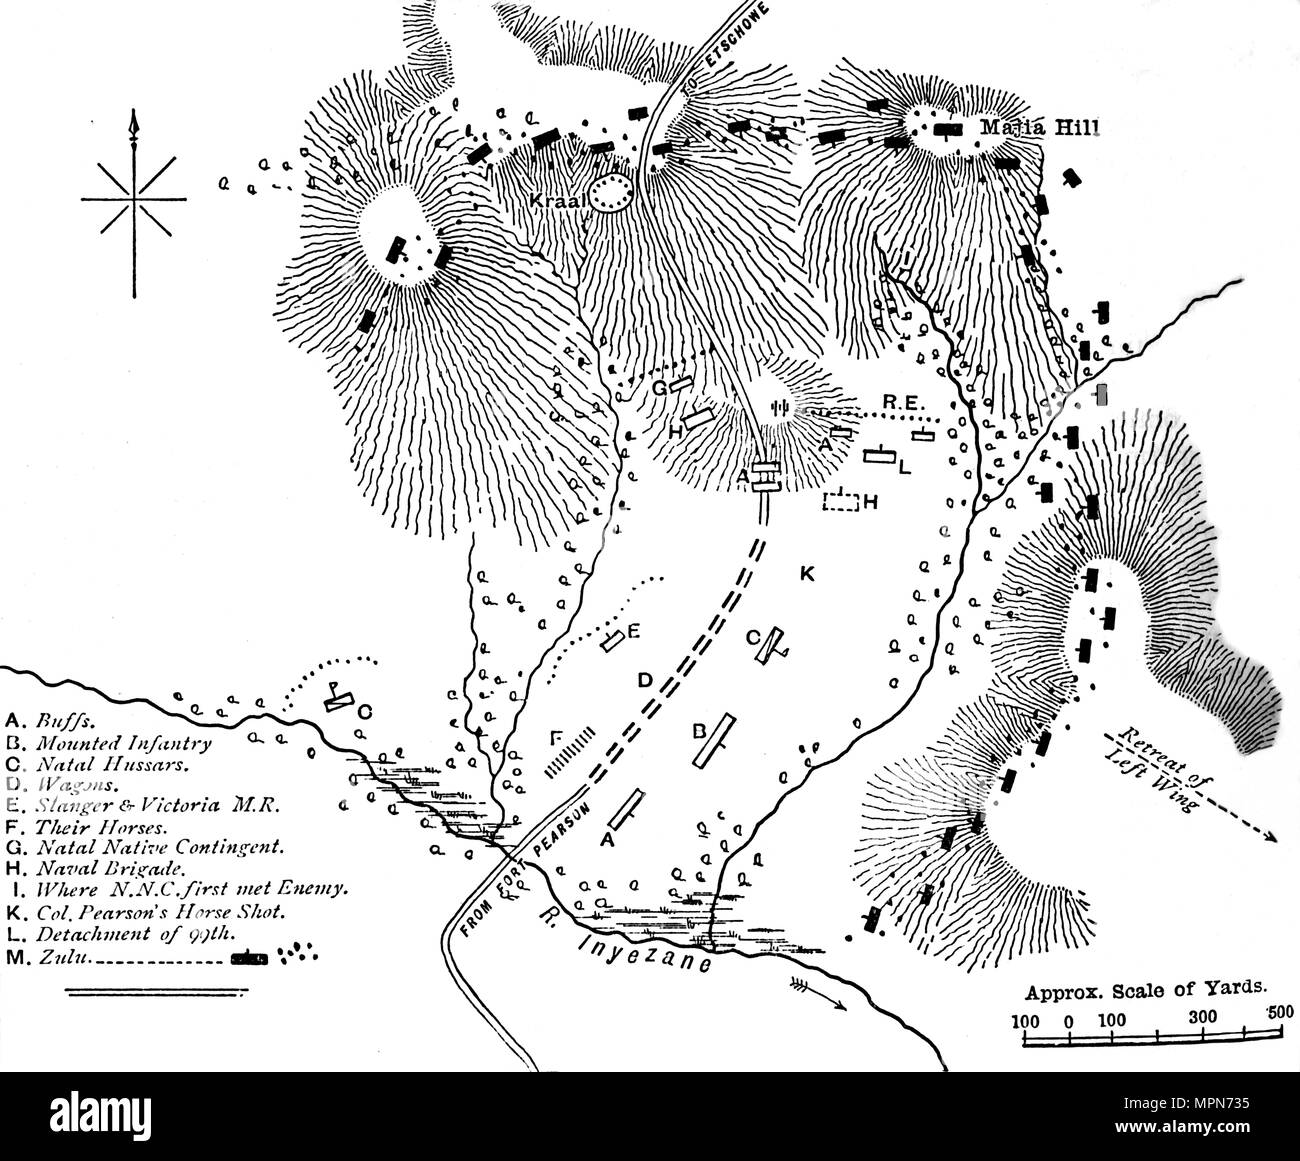 'Plan of the Fight at Inyezane, (Jan. 22, 1879)', c1880. Artist: Unknown. - Stock Image